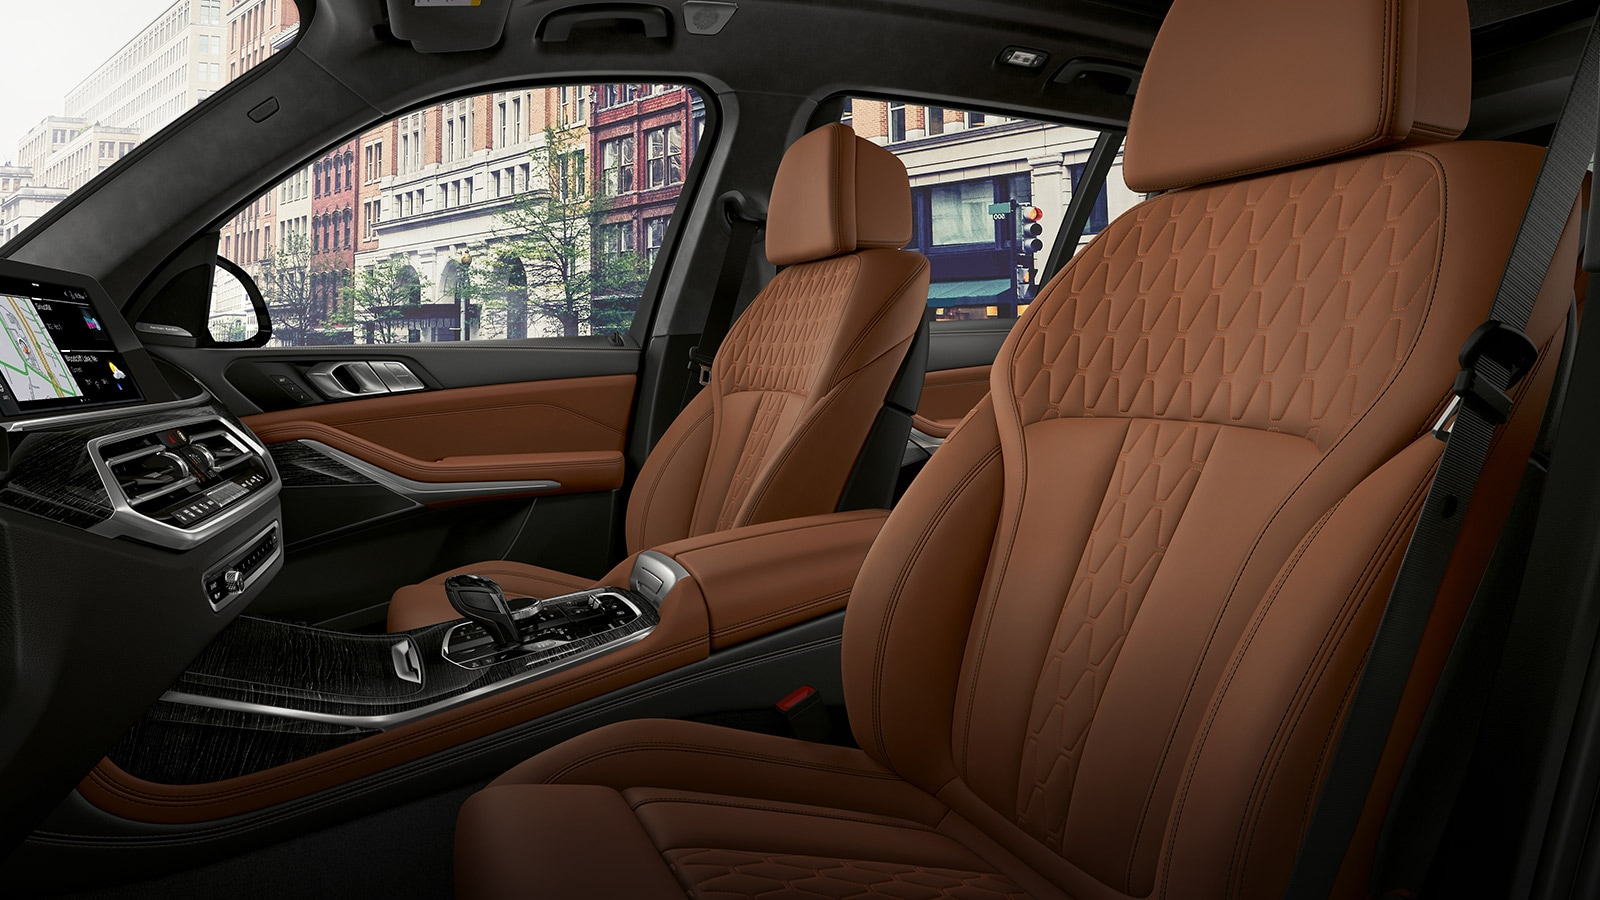 2020 BMW X7 Interior Seats